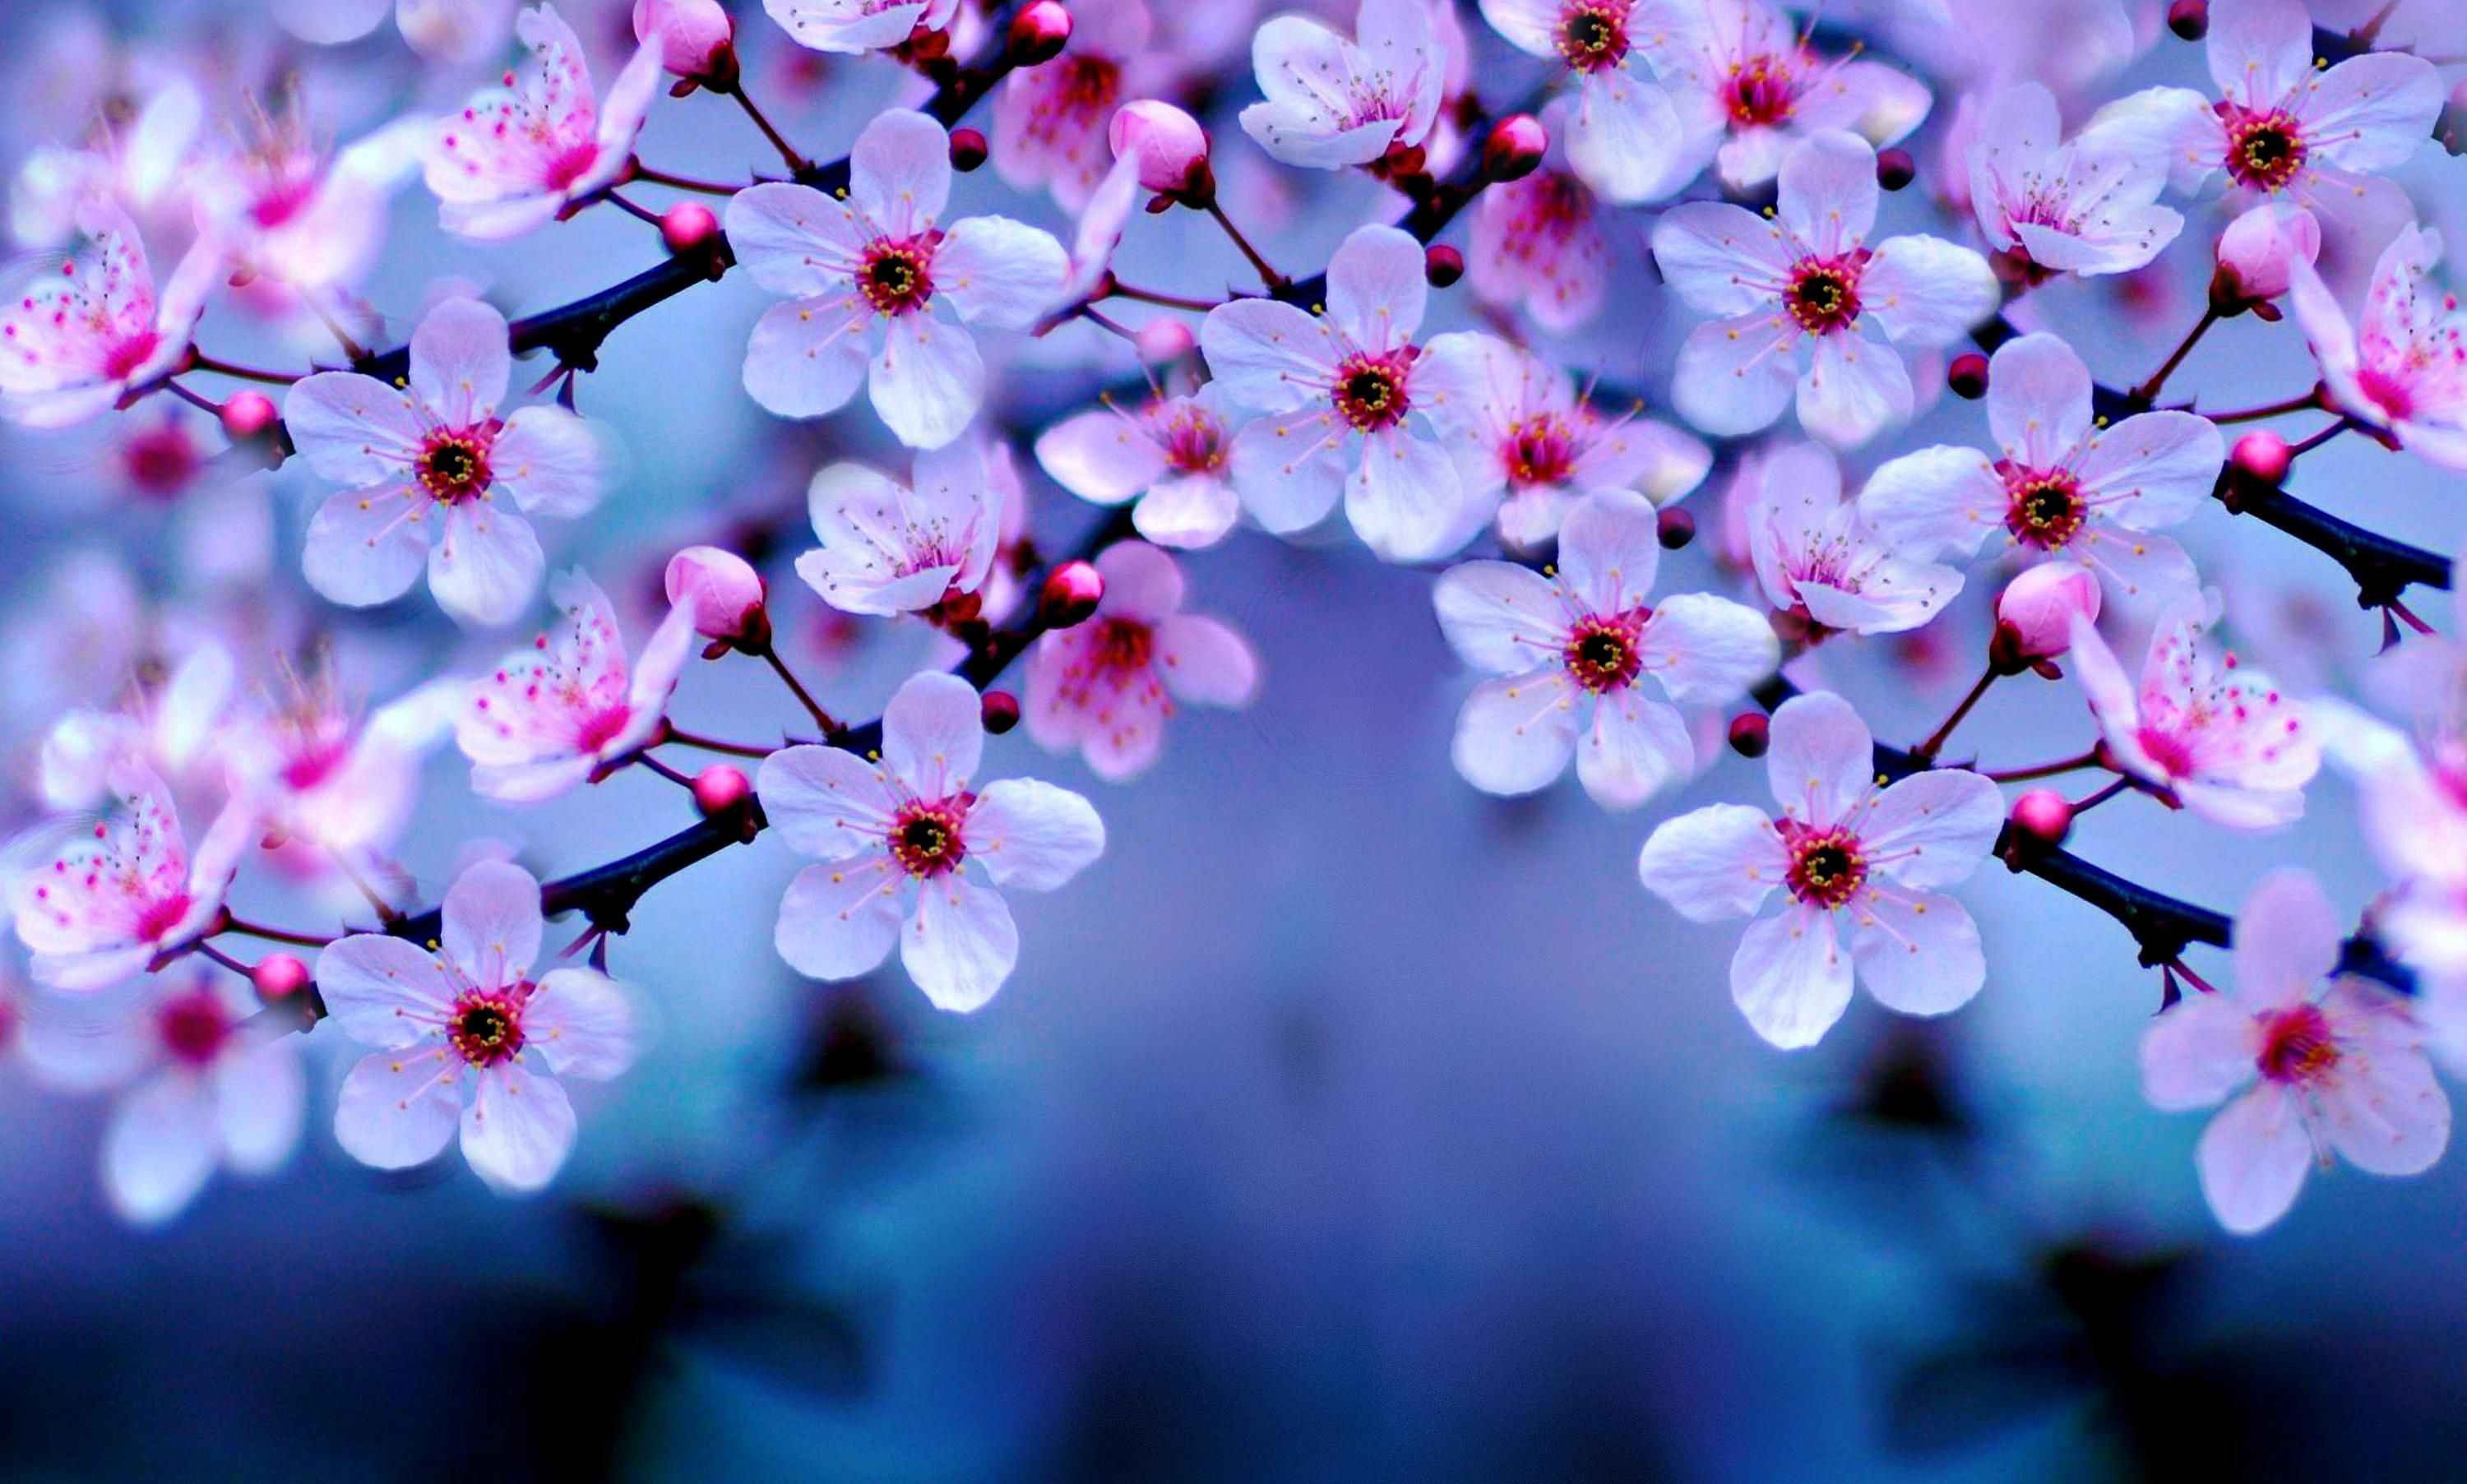 Cherry Blossom Wallpapers Wallpaper Cave Cherry